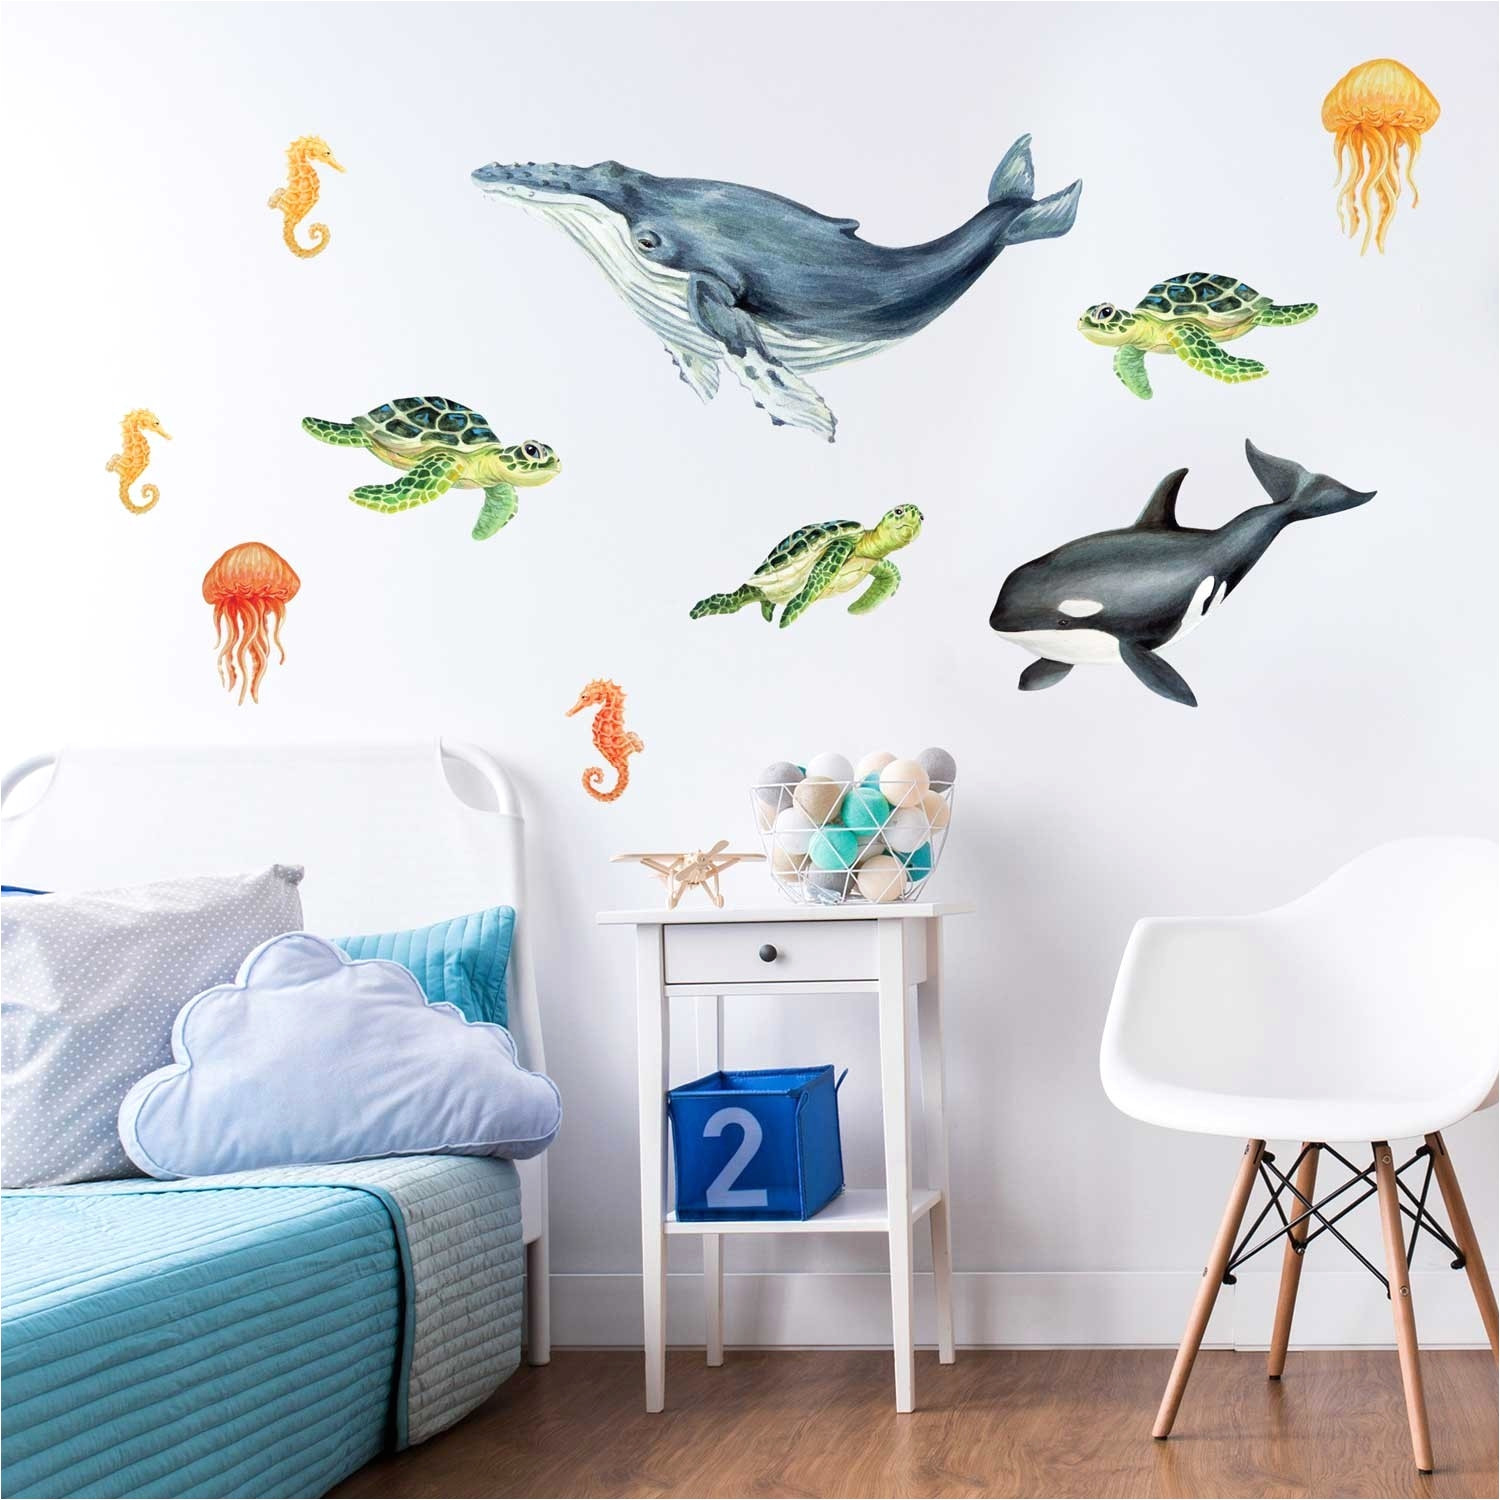 fish in flower vase of stickers for walls in bedrooms wall decal luxury 1 kirkland wall regarding stickers for walls in bedrooms wall decal luxury 1 kirkland wall decor home design 0d outdoor